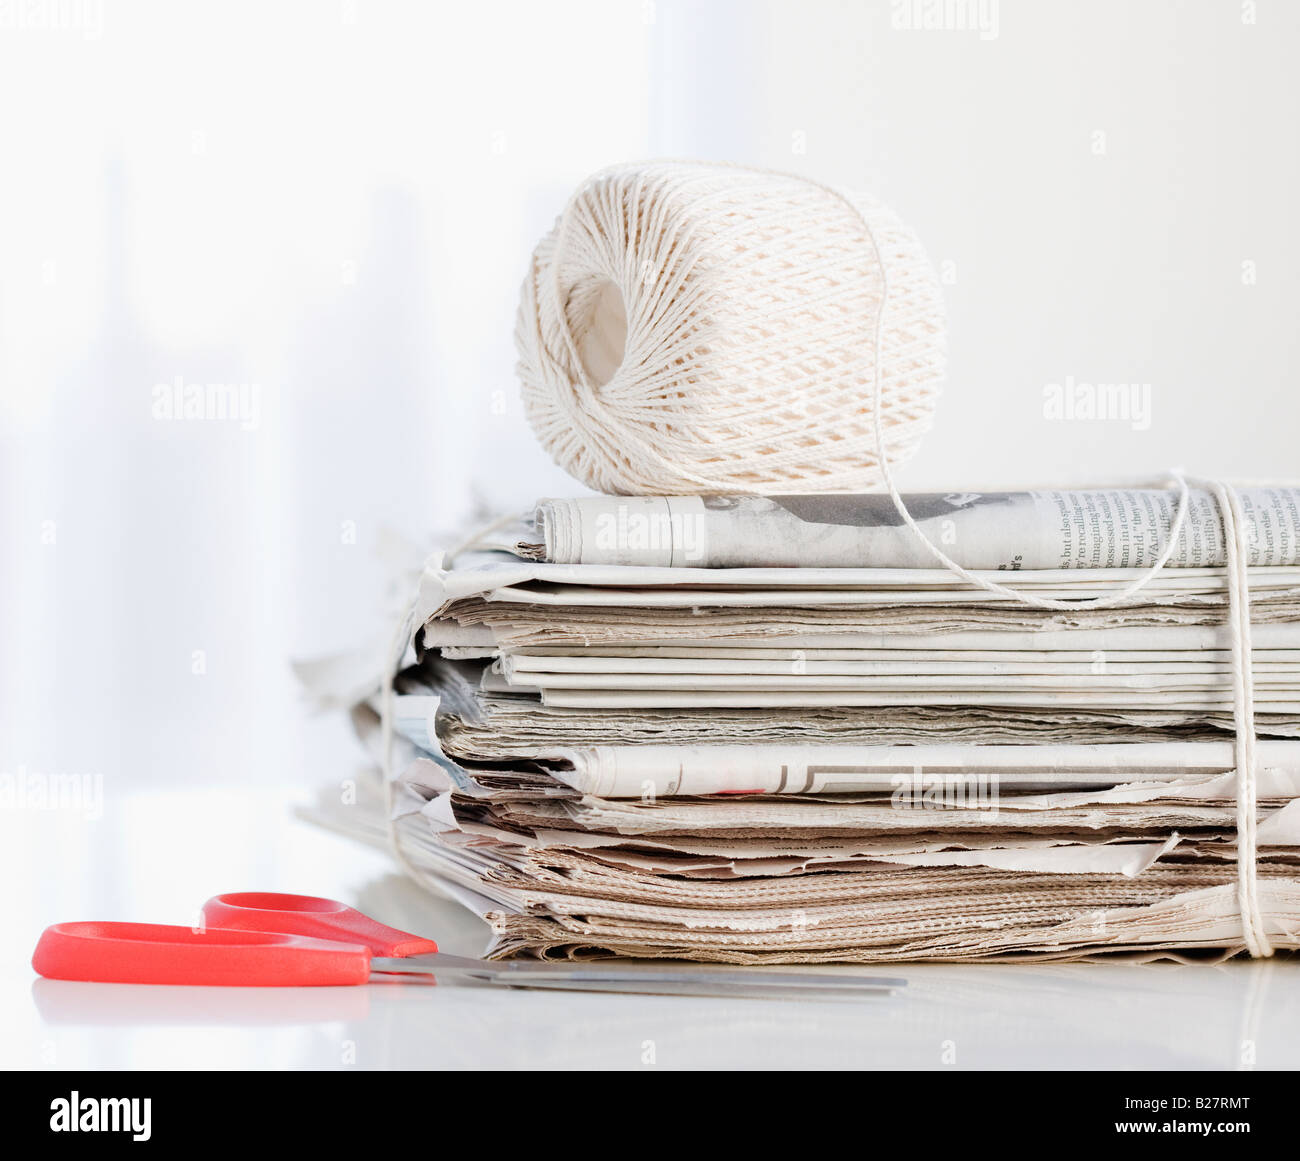 String and scissors with newspaper bundle - Stock Image